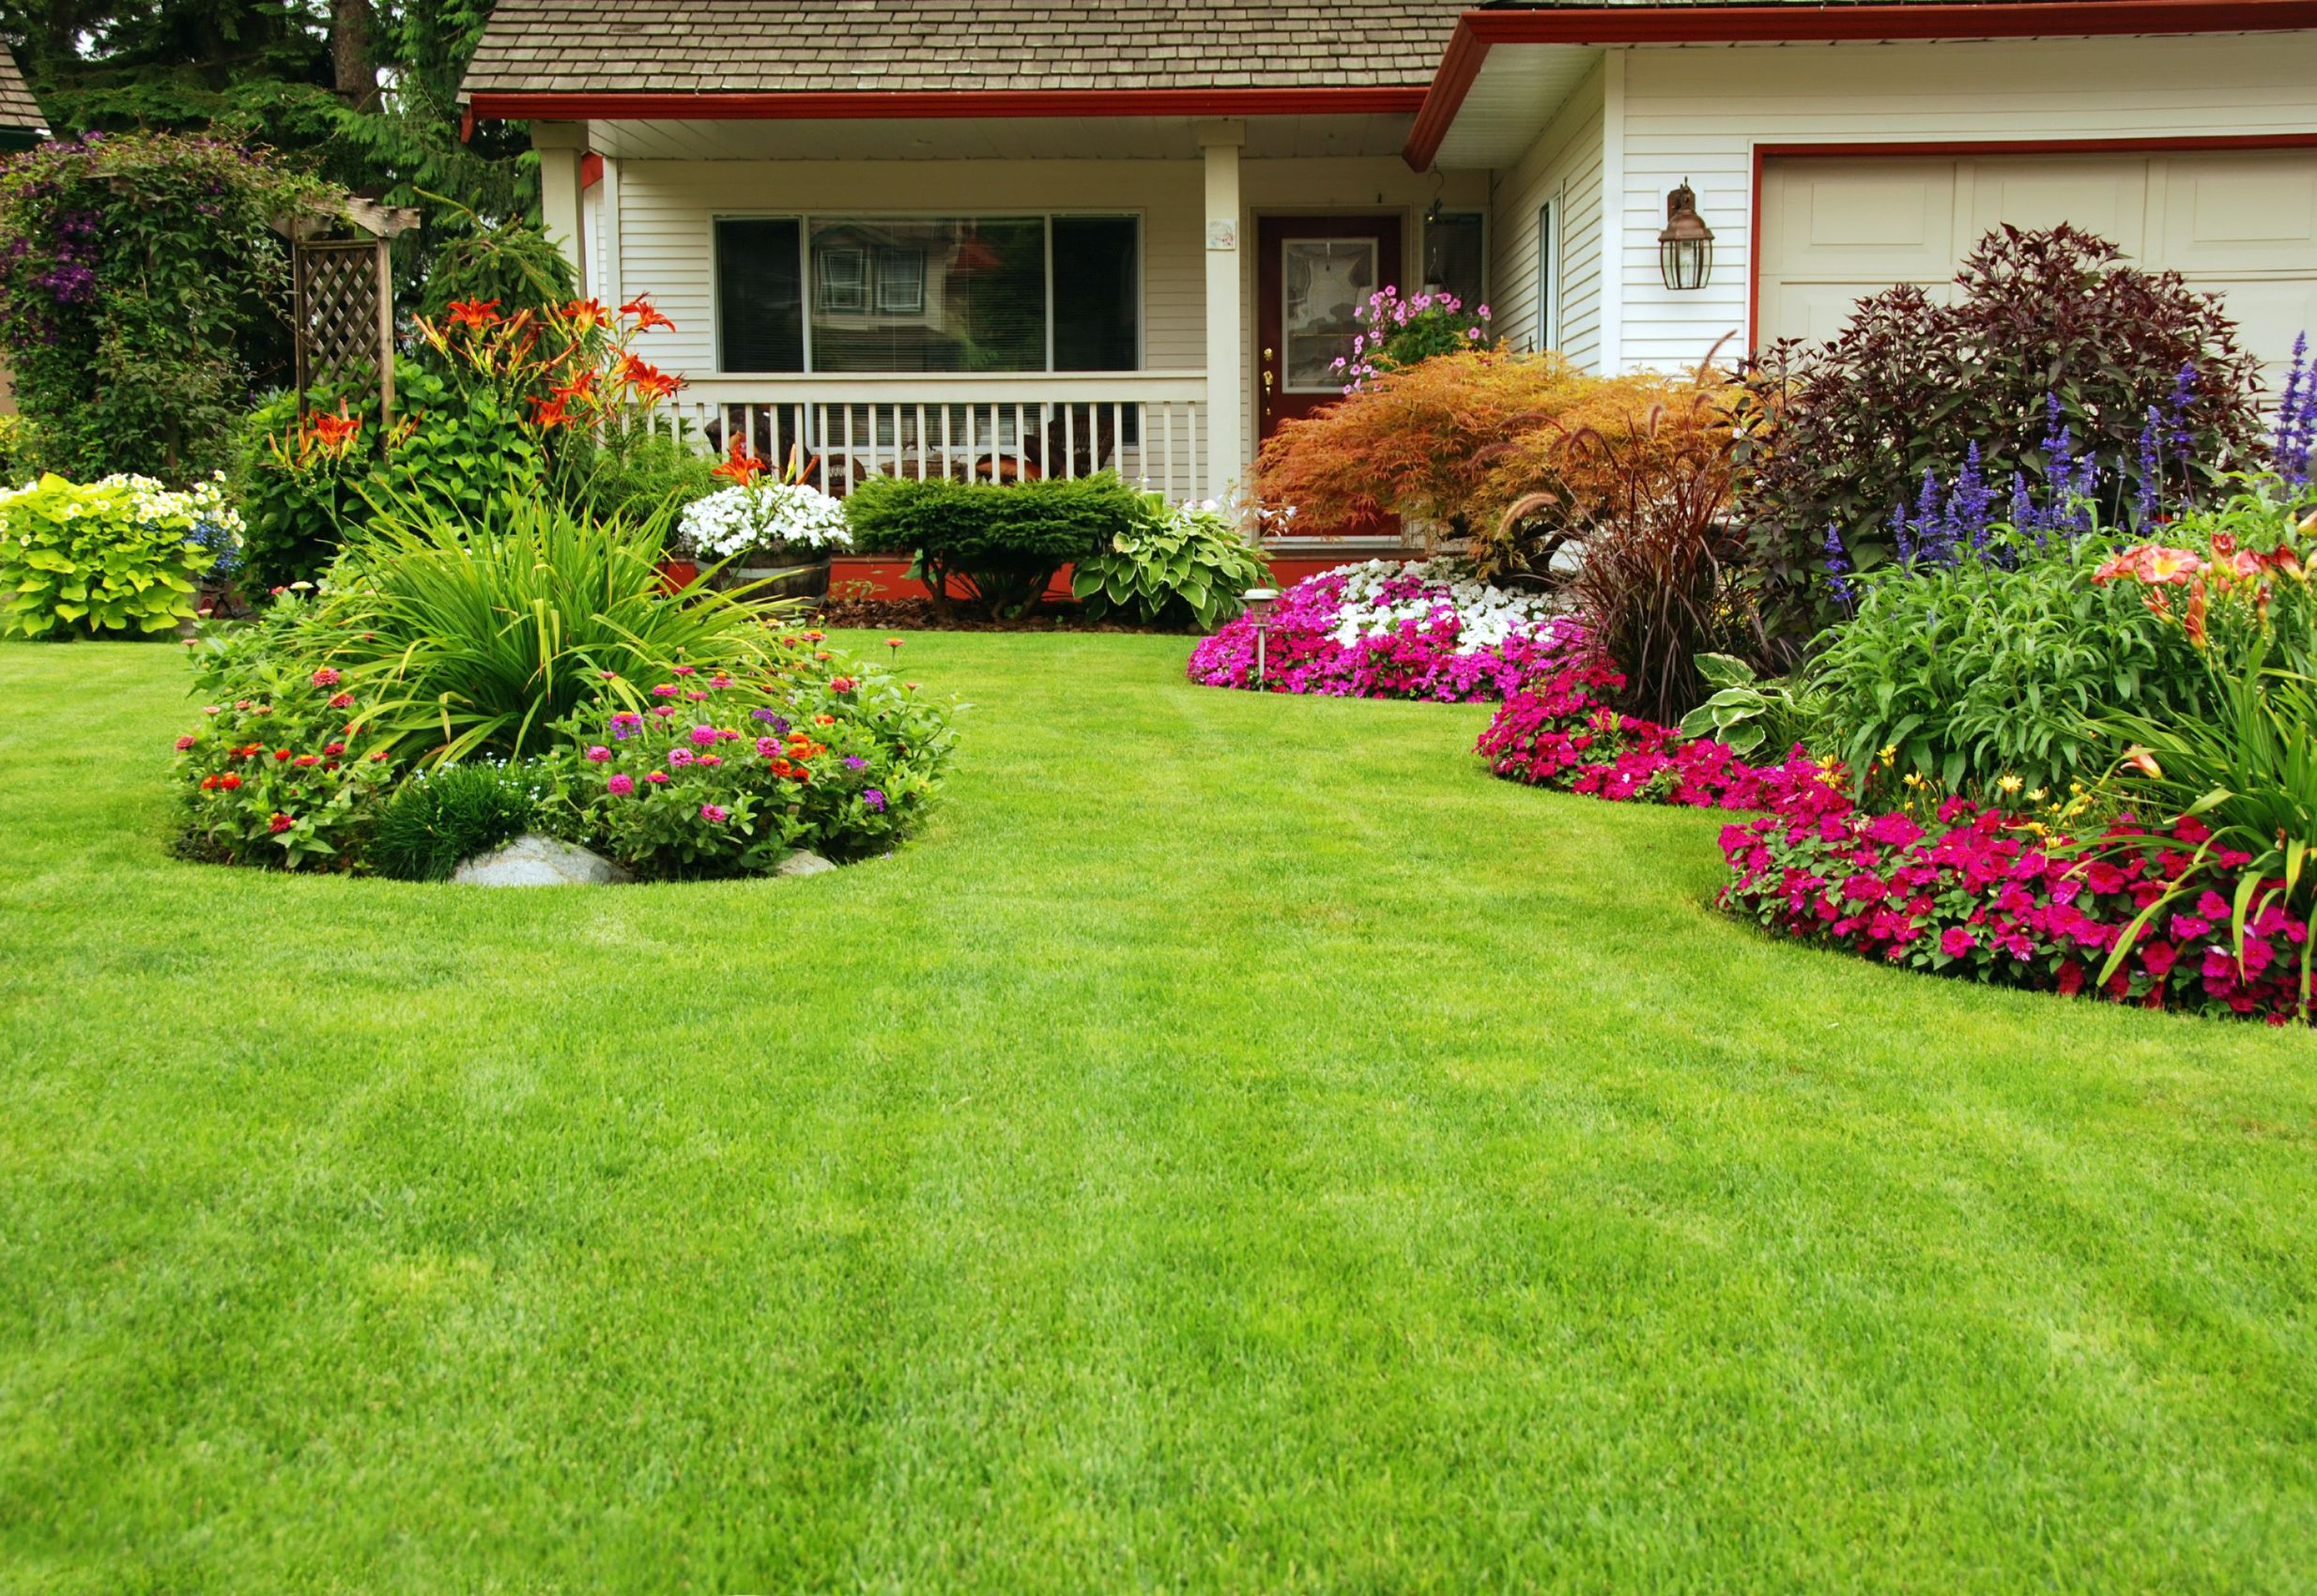 3 Ways That Professional Landscaping in Boston Benefits Homeowners